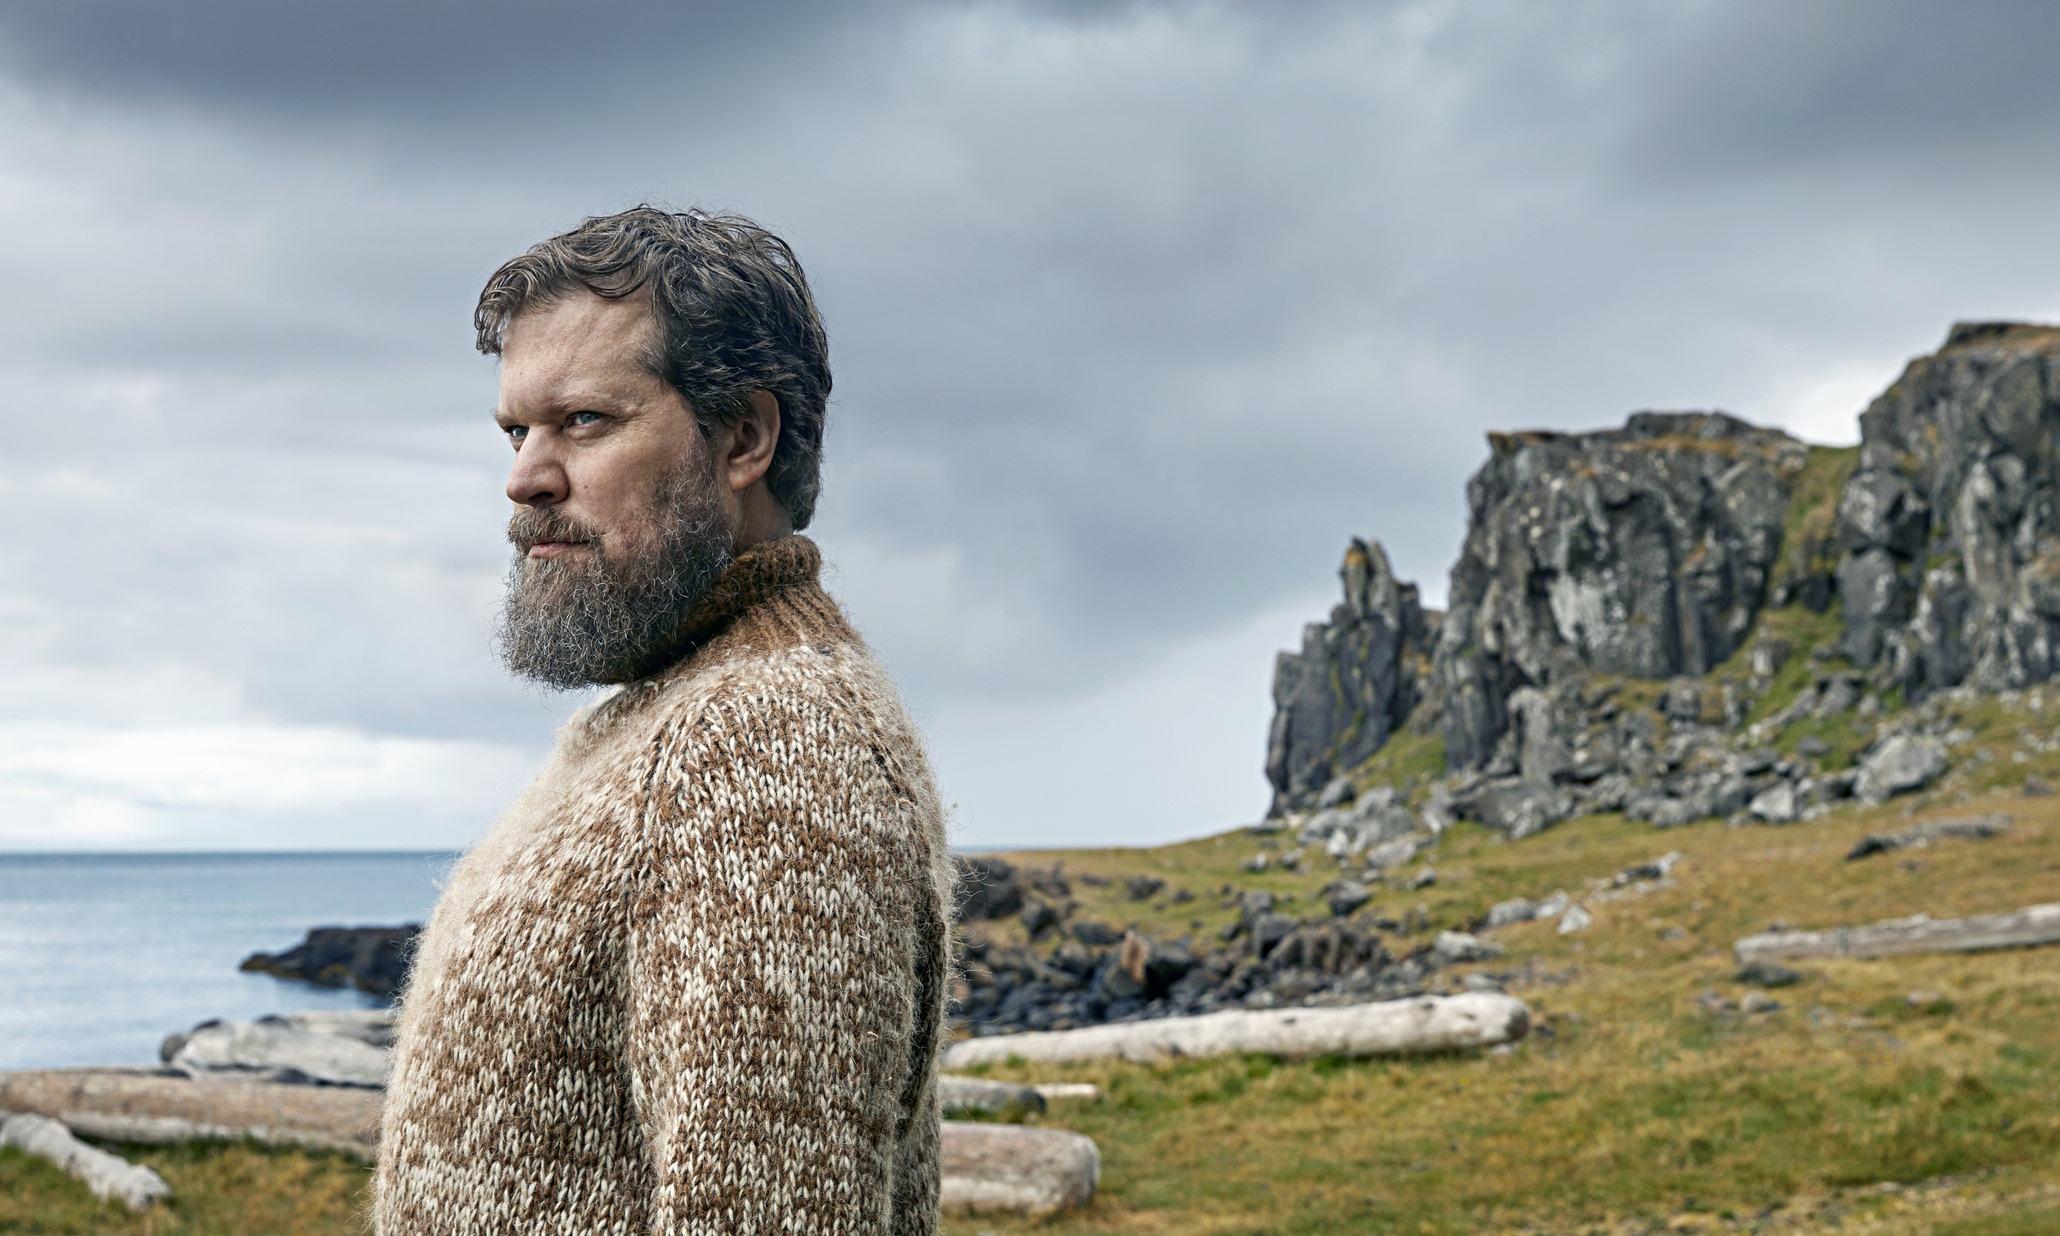 John Grant standing by the sea in Iceland, in a woolly jumper